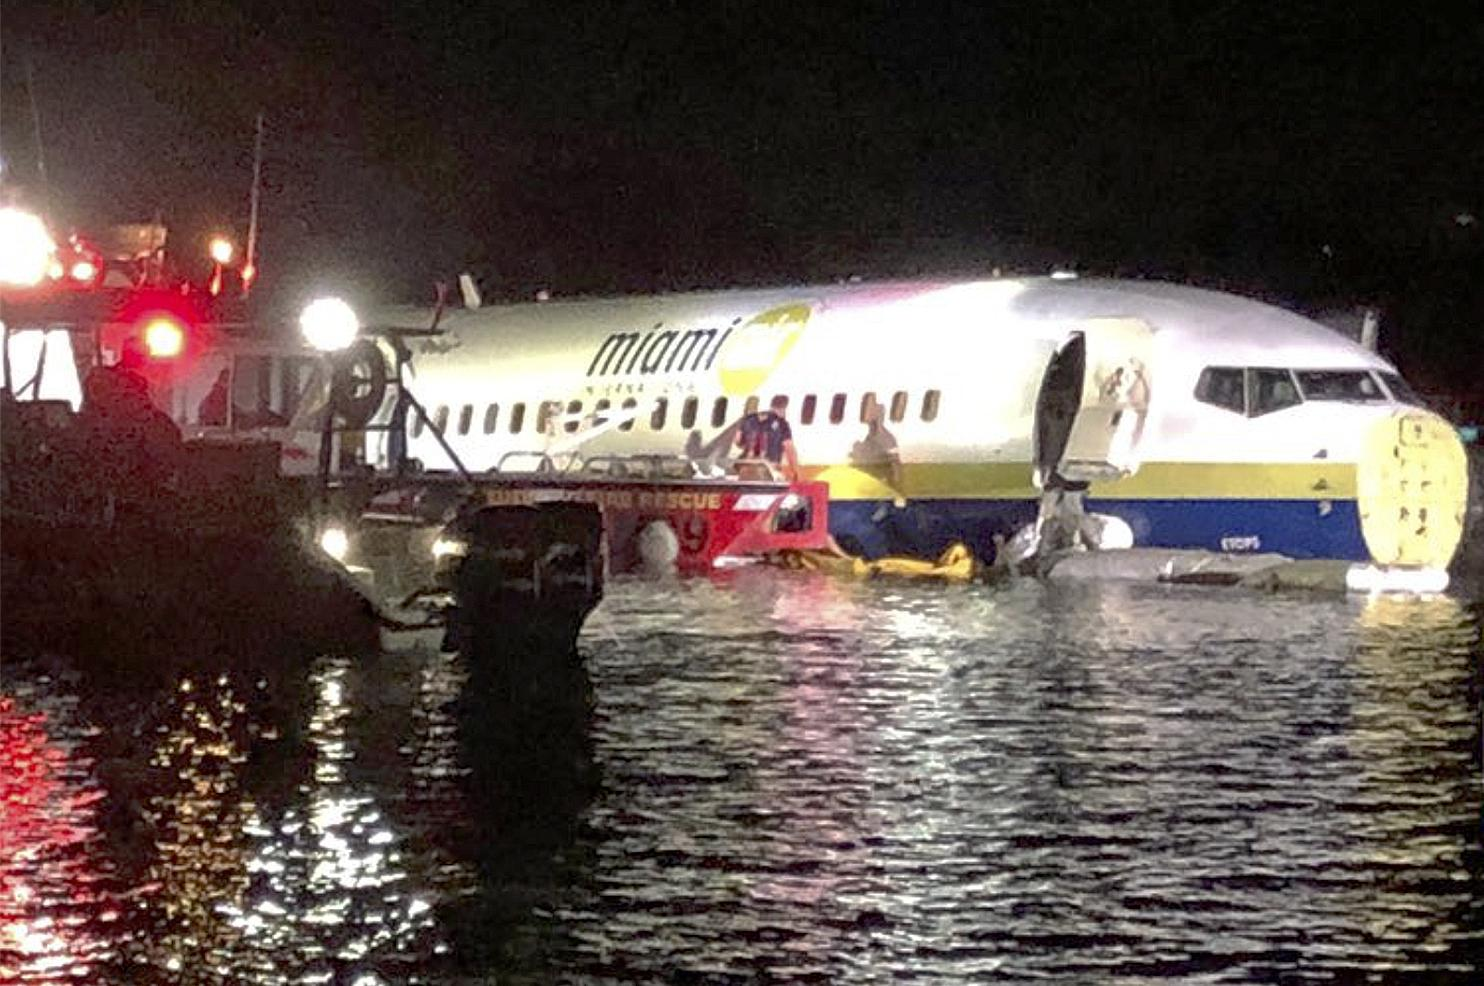 Plane crashes into Florida river at end of runway, no deaths | The